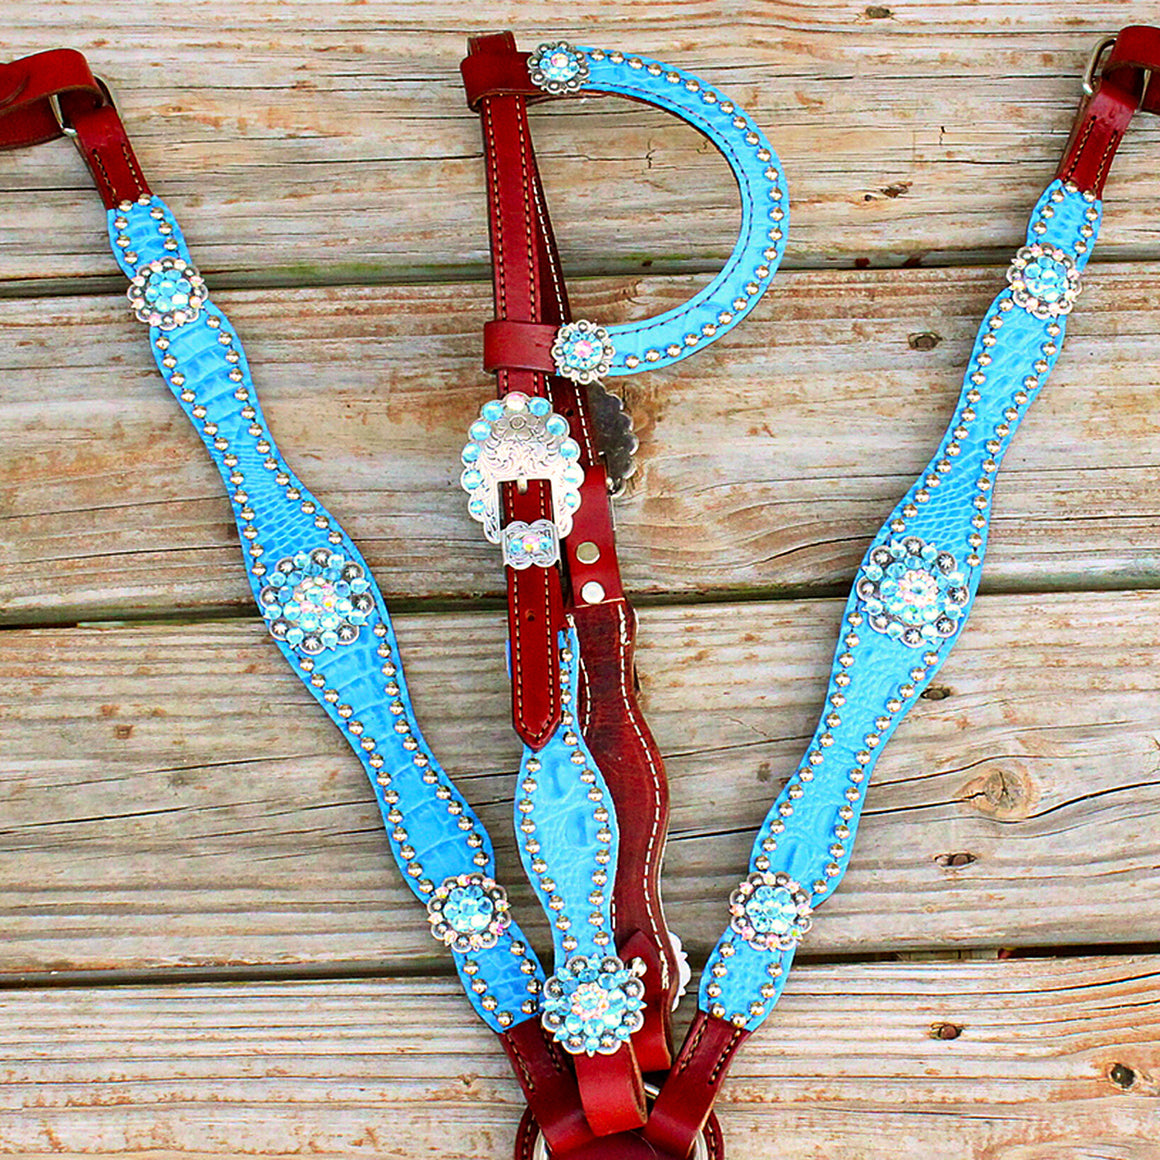 Lt. Blue Gator/Chestnut Leather One Ear Tack Set w/AB-Aqua Crystal Rhinestone Conchos